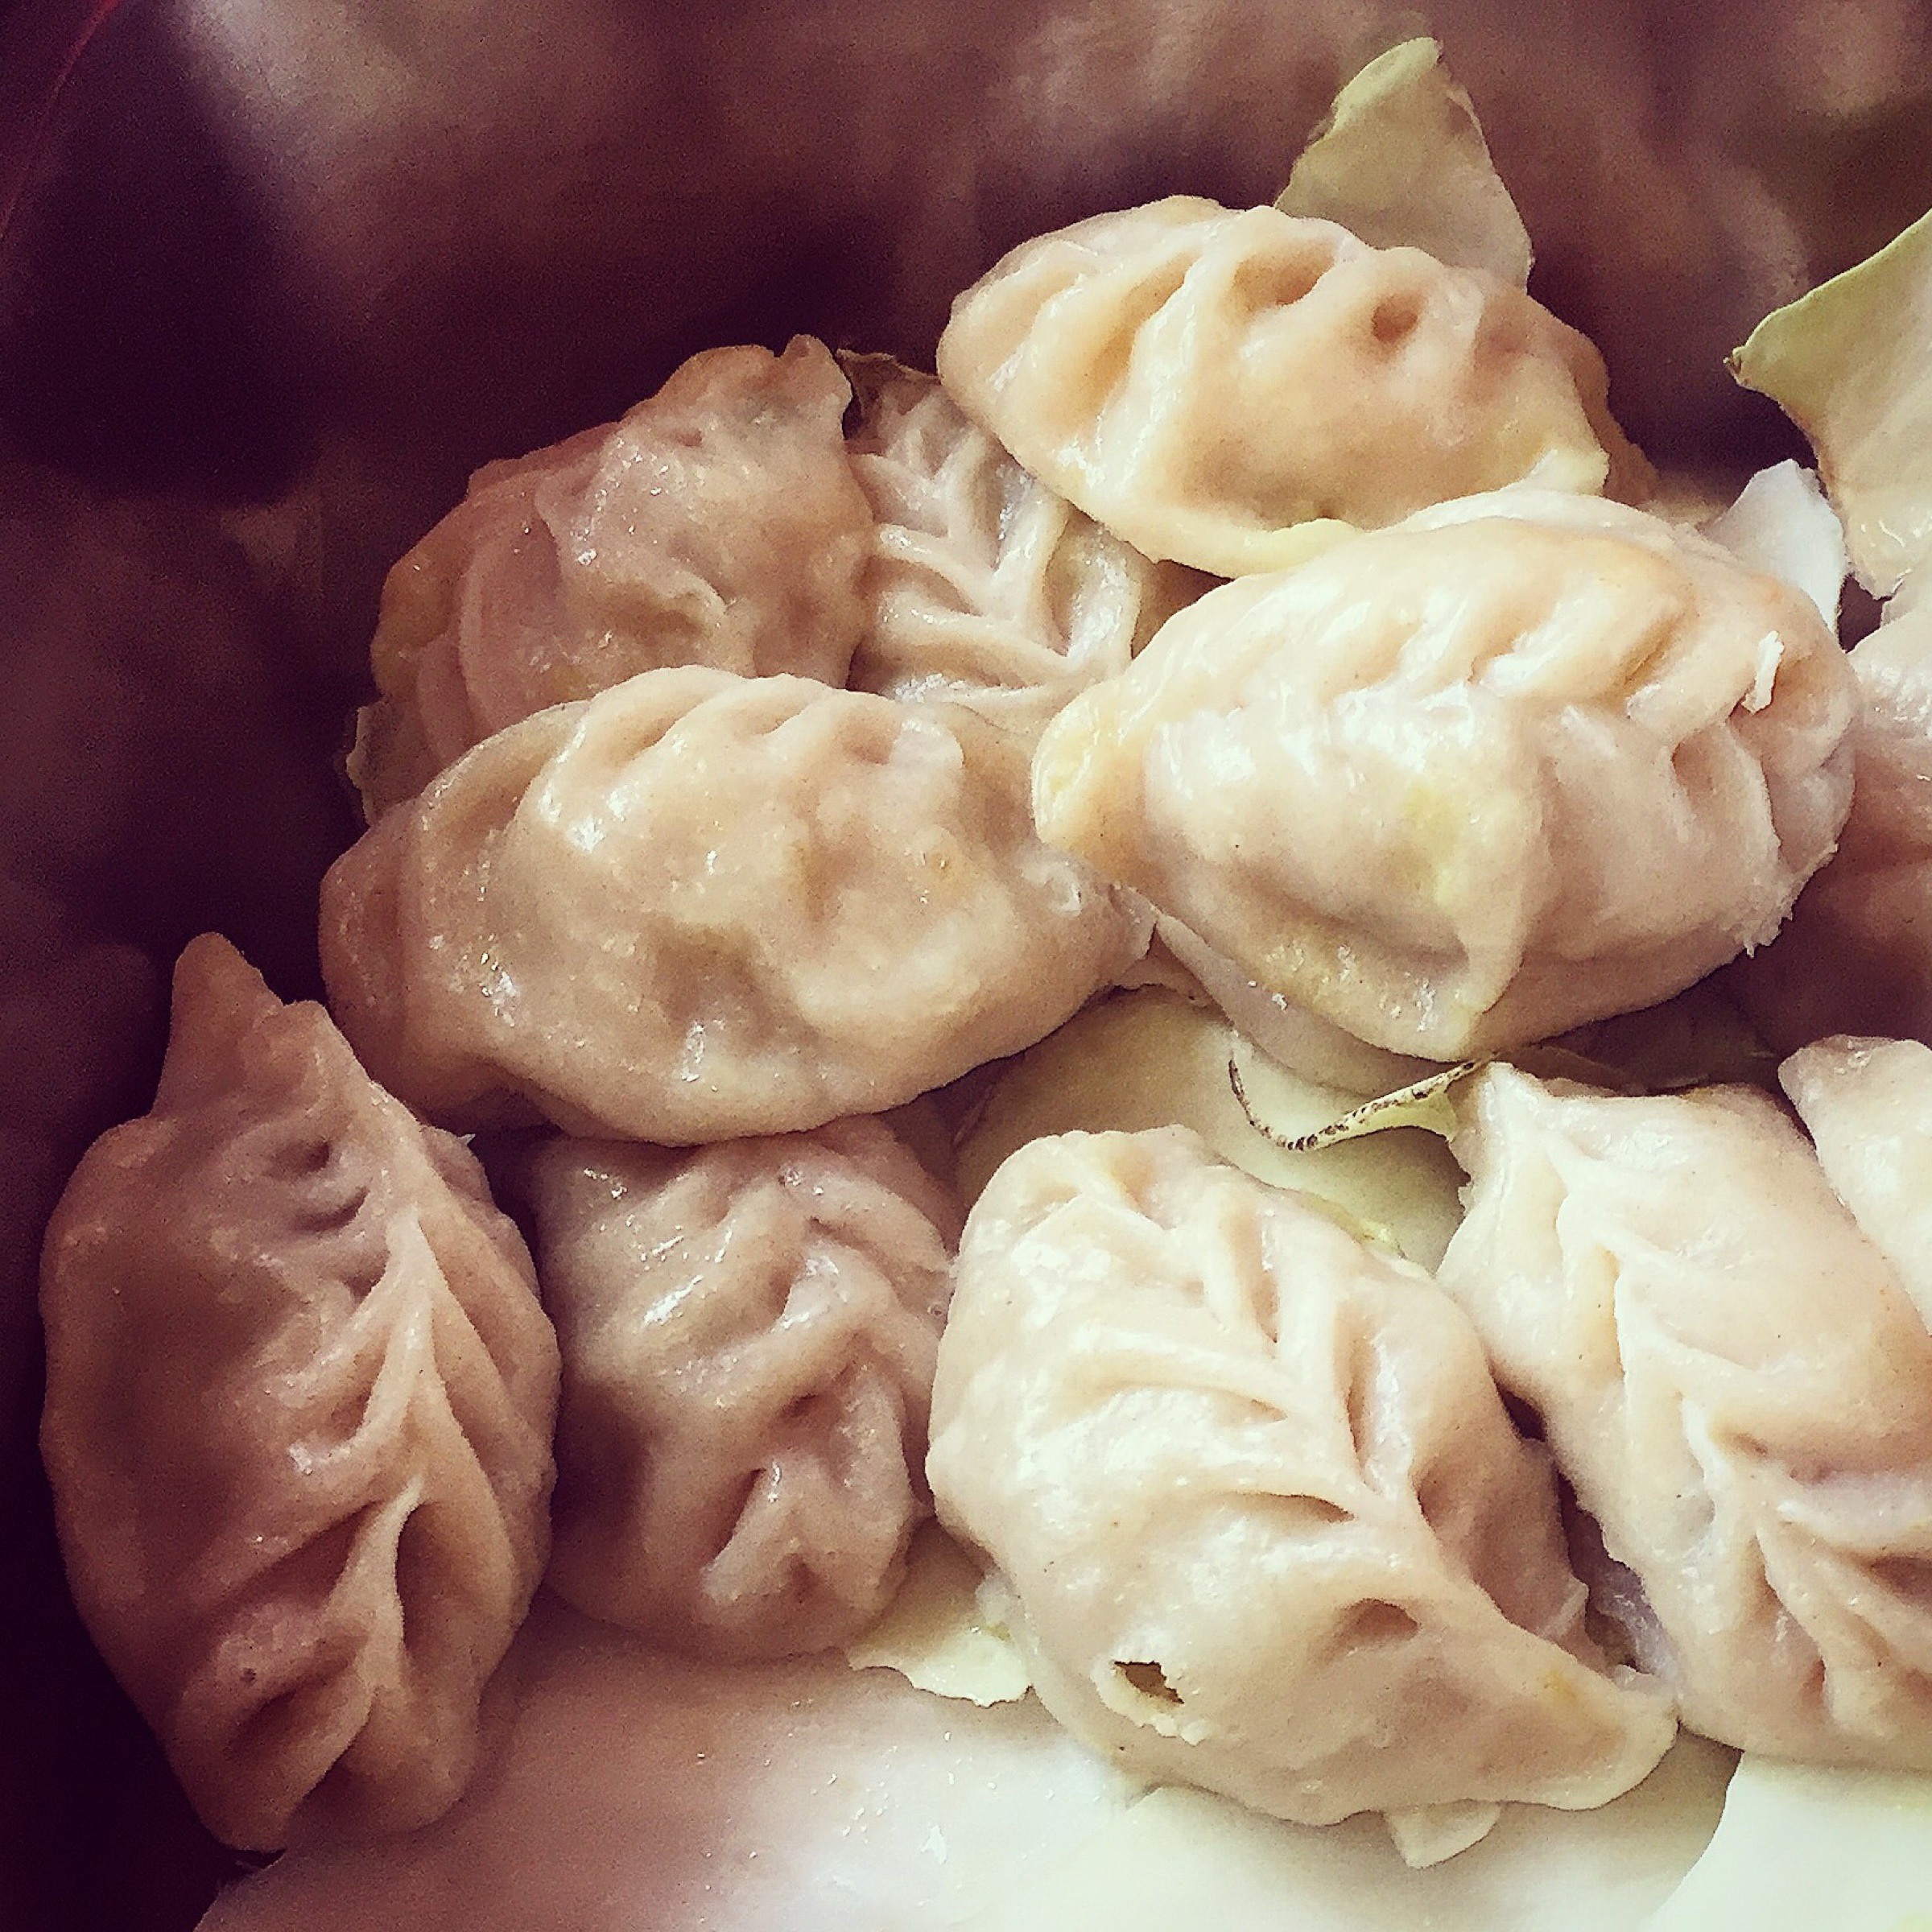 himalayan sherpa kitchen menu - burlington, vt - foodspotting